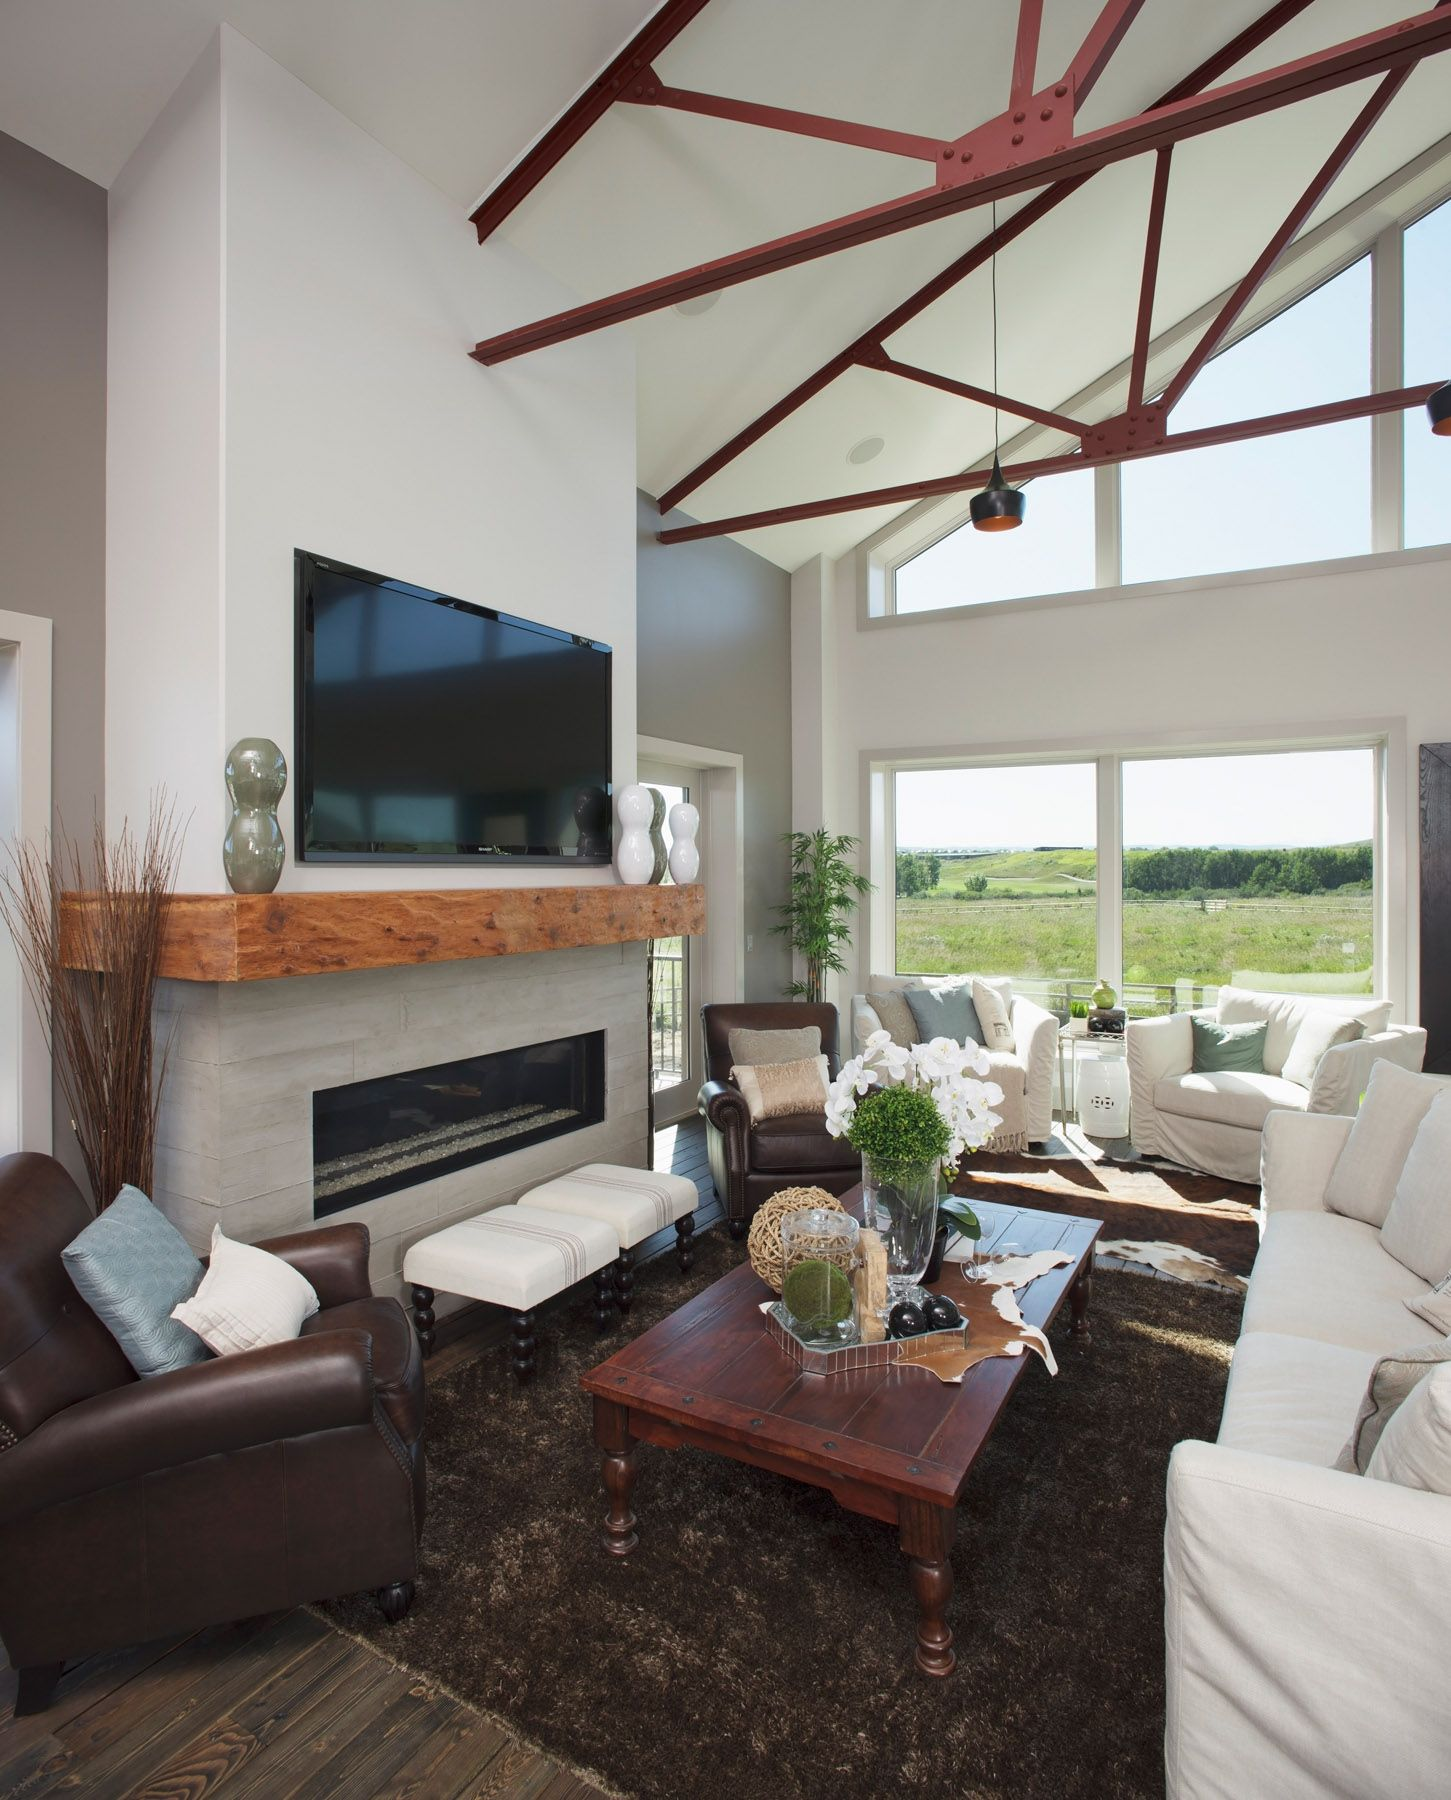 15 Modern Living Room Decorating Ideas 15 Modern Living: Fireplace With Concrete Tiles To Imitate The Look Of Barn